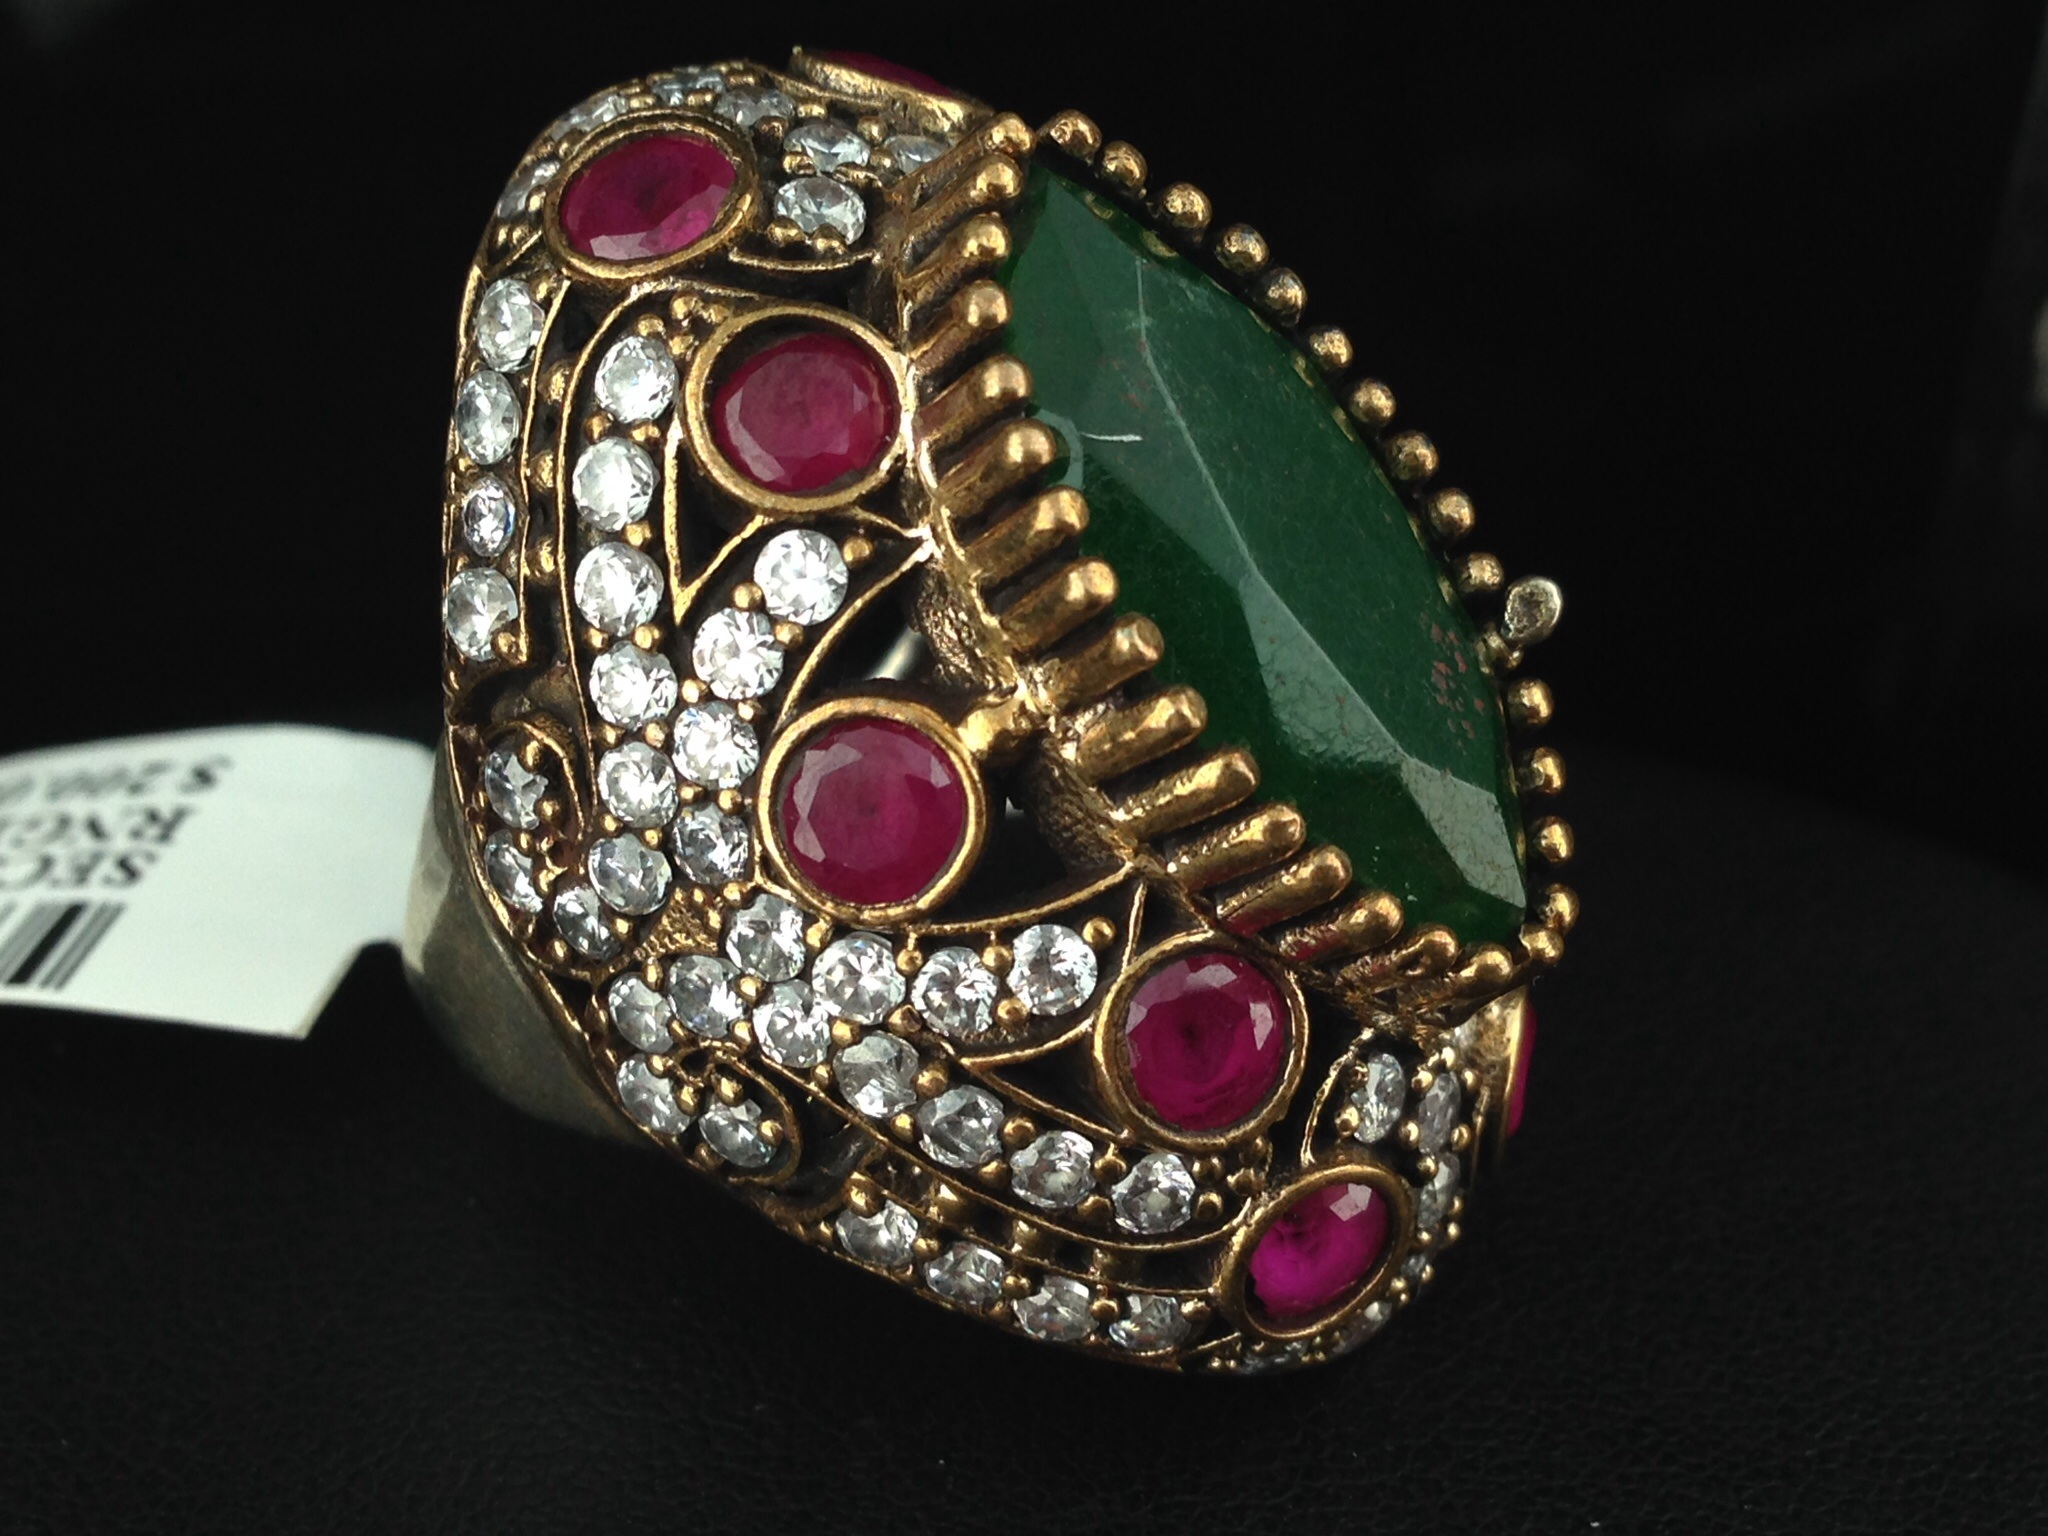 Turkish Ring With Emeralds And Rubies